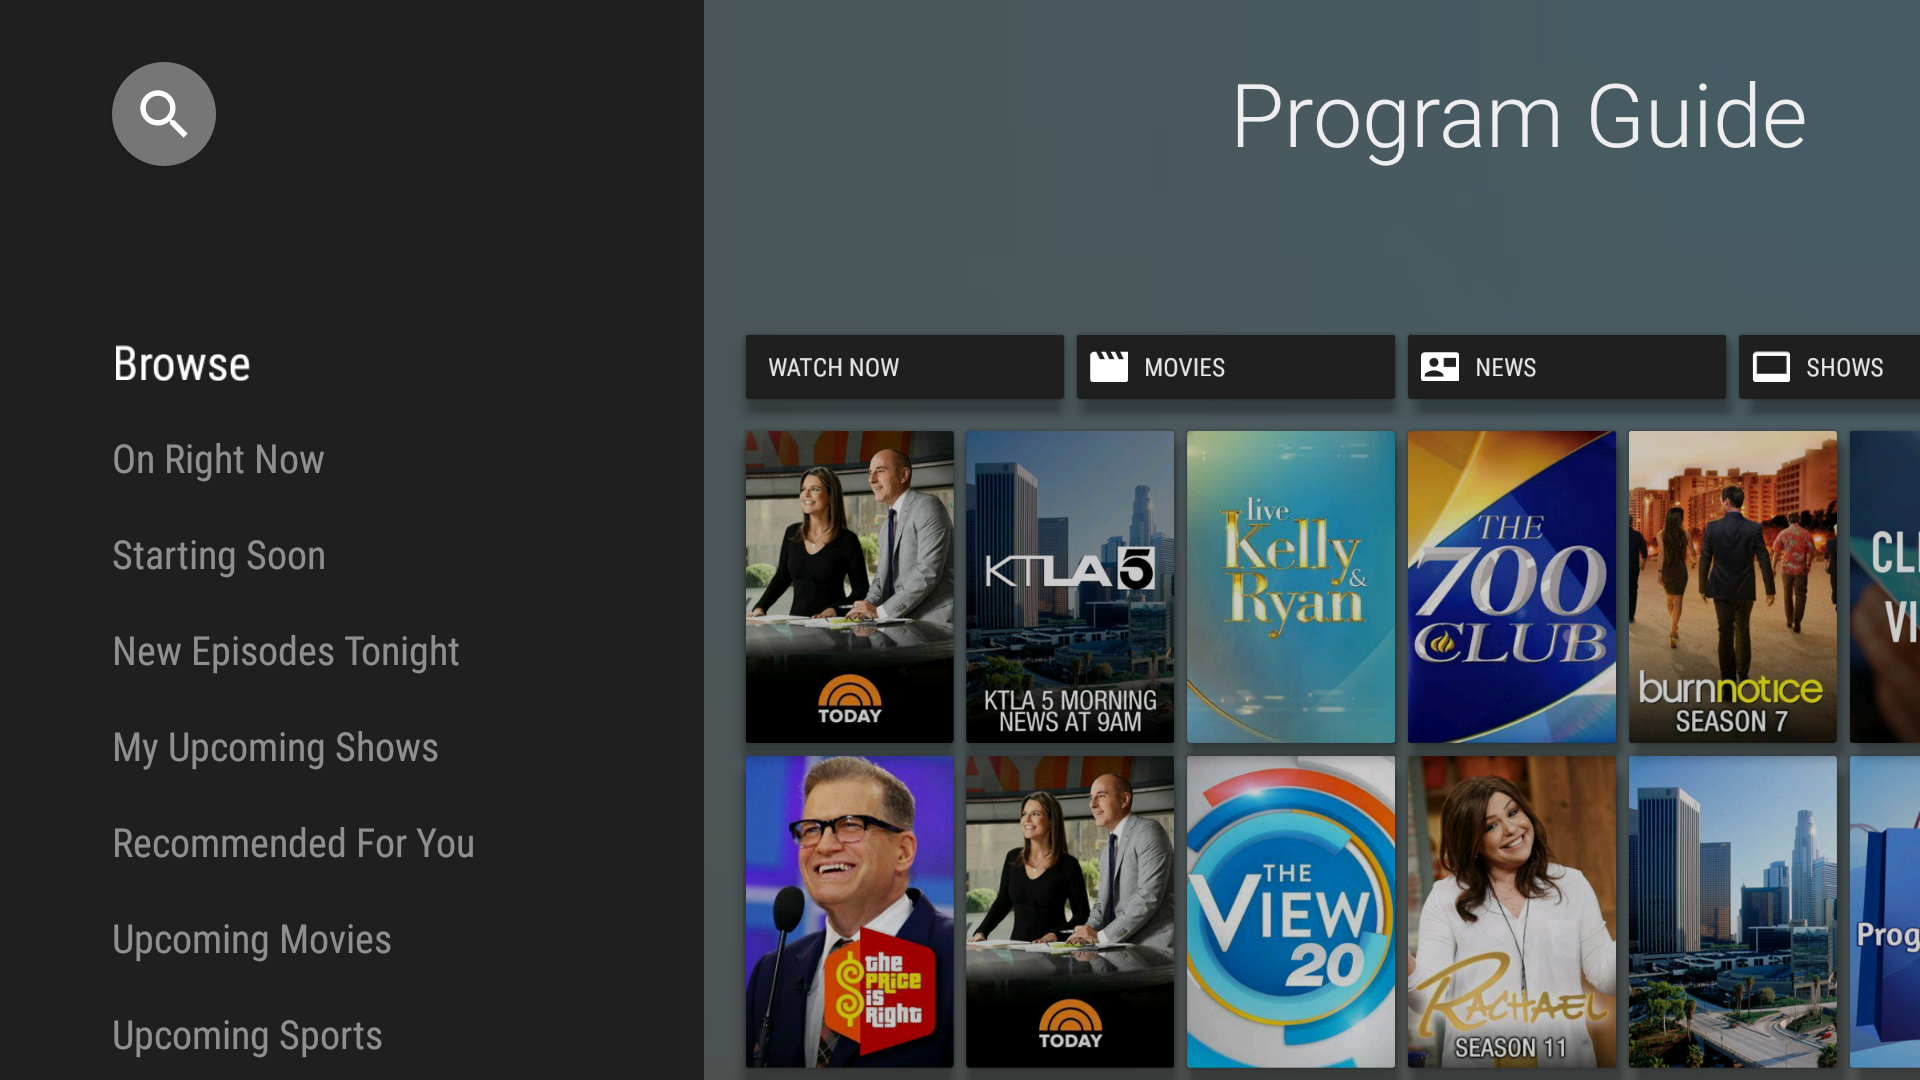 Plex Live TV and DVR features arrive on Android and Apple TV